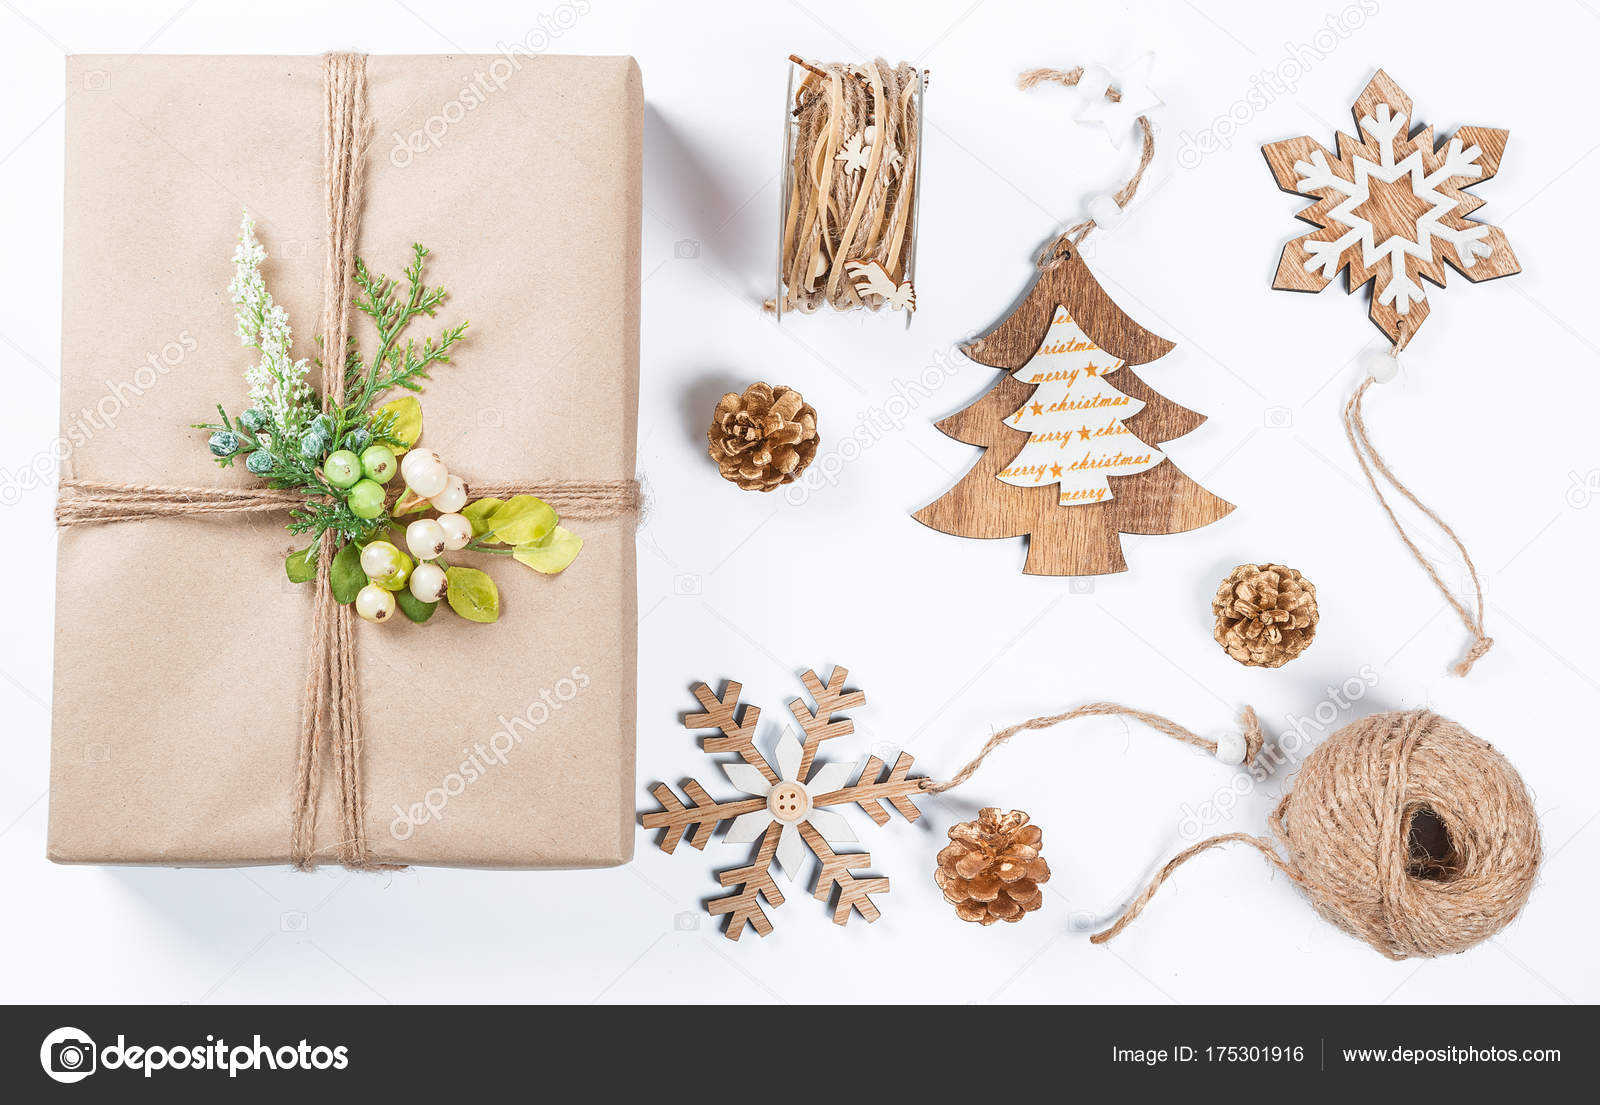 classy christmas gifts box presents in brown paper with toys and new year decor on white merry christmas card background photo by lilichka2015